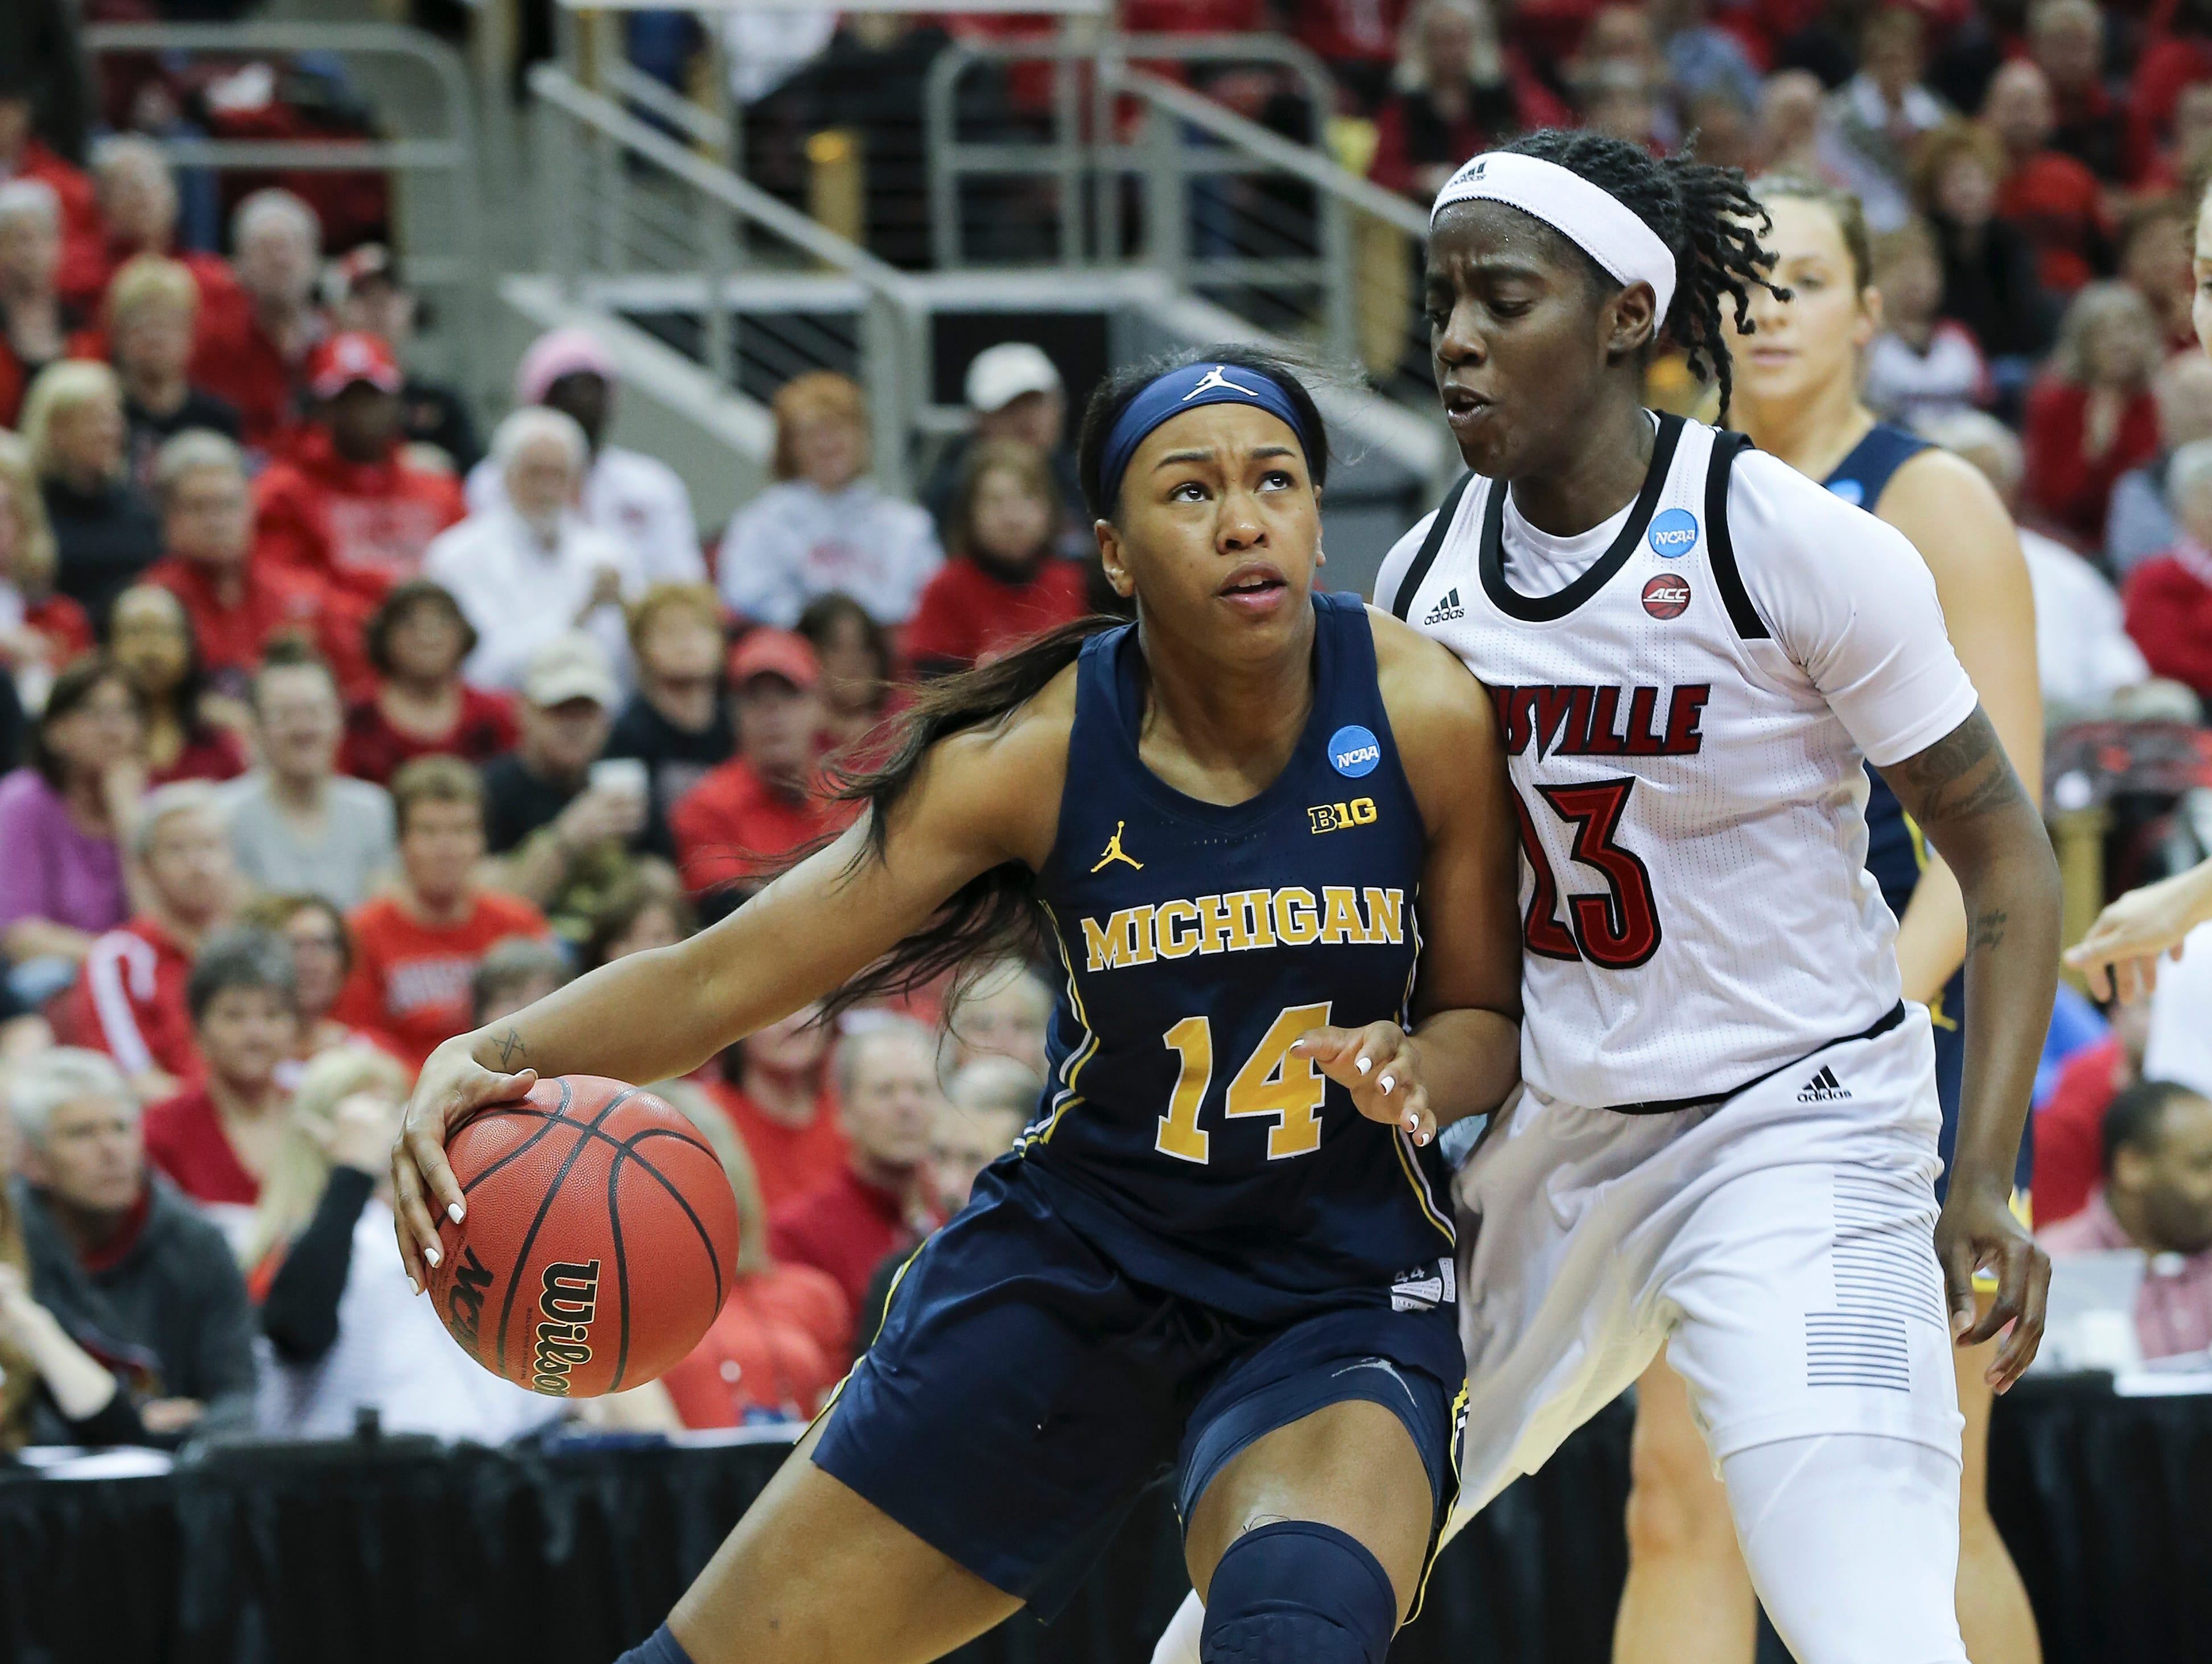 Michigan's Akienreh Johnson (14) drove against U of L's Jazmine Jones (23) during the second round of their NCAA Tournament game at the Yum Center.Mar. 24, 2019